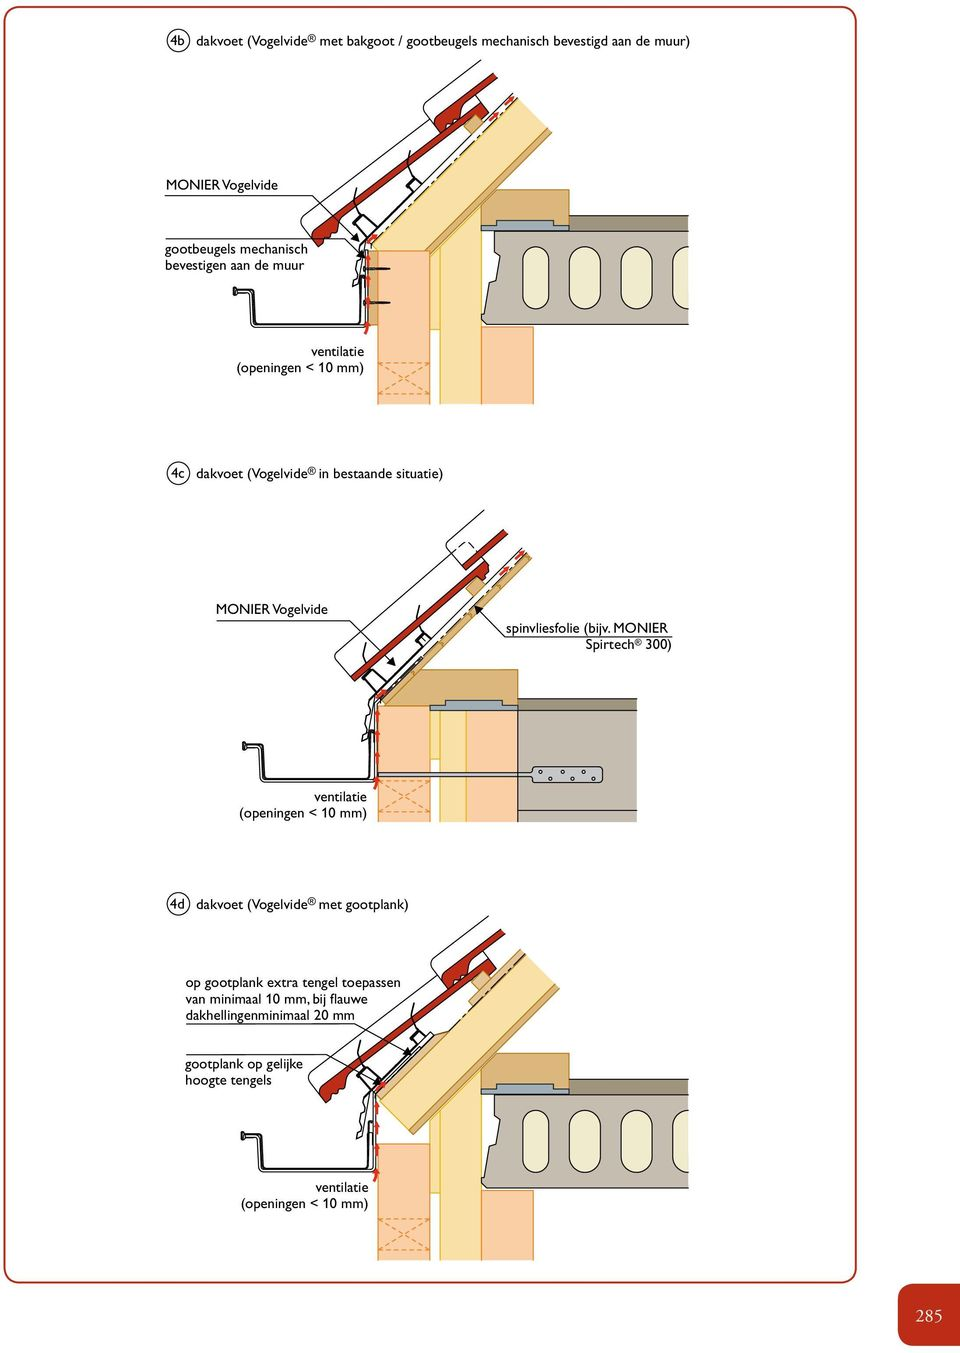 Panlatten Monteren Daktechniek More Power To Your Roof Monier Th 09 10 3 Pdf